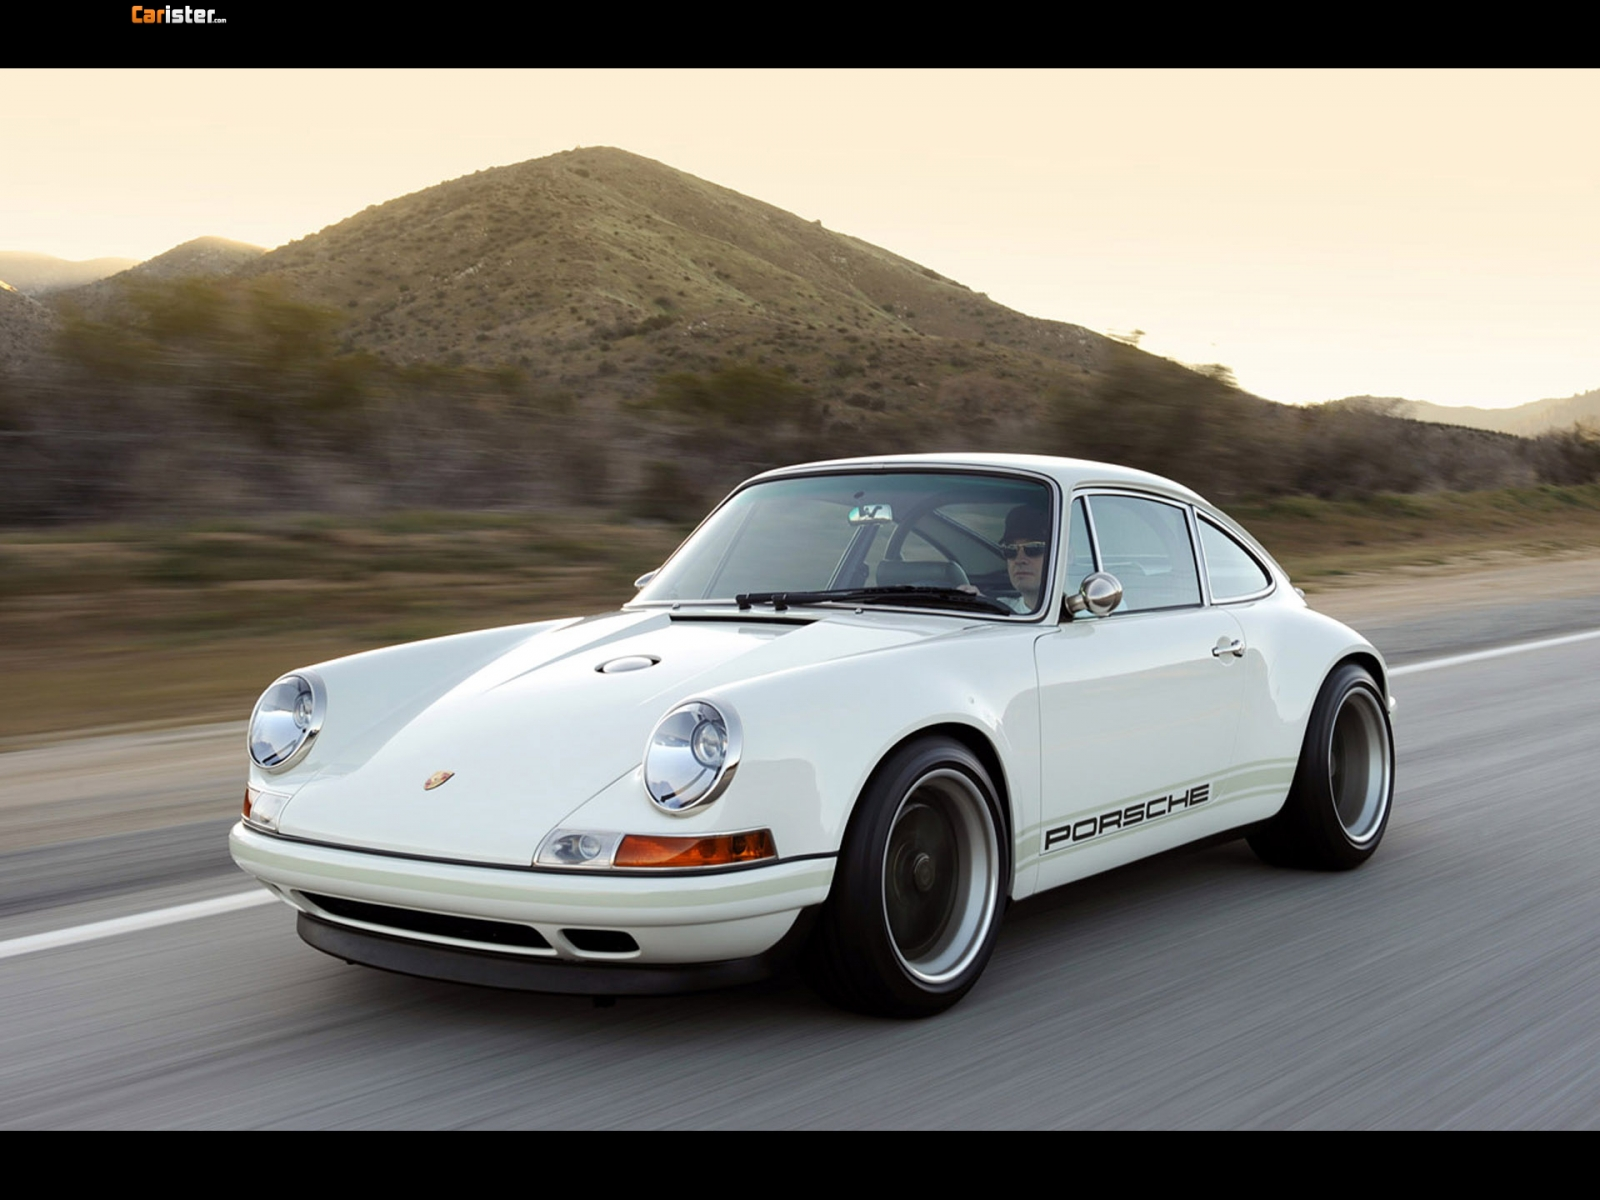 Singer 911 2011 - Photo 10 - Taille: 1600x1200